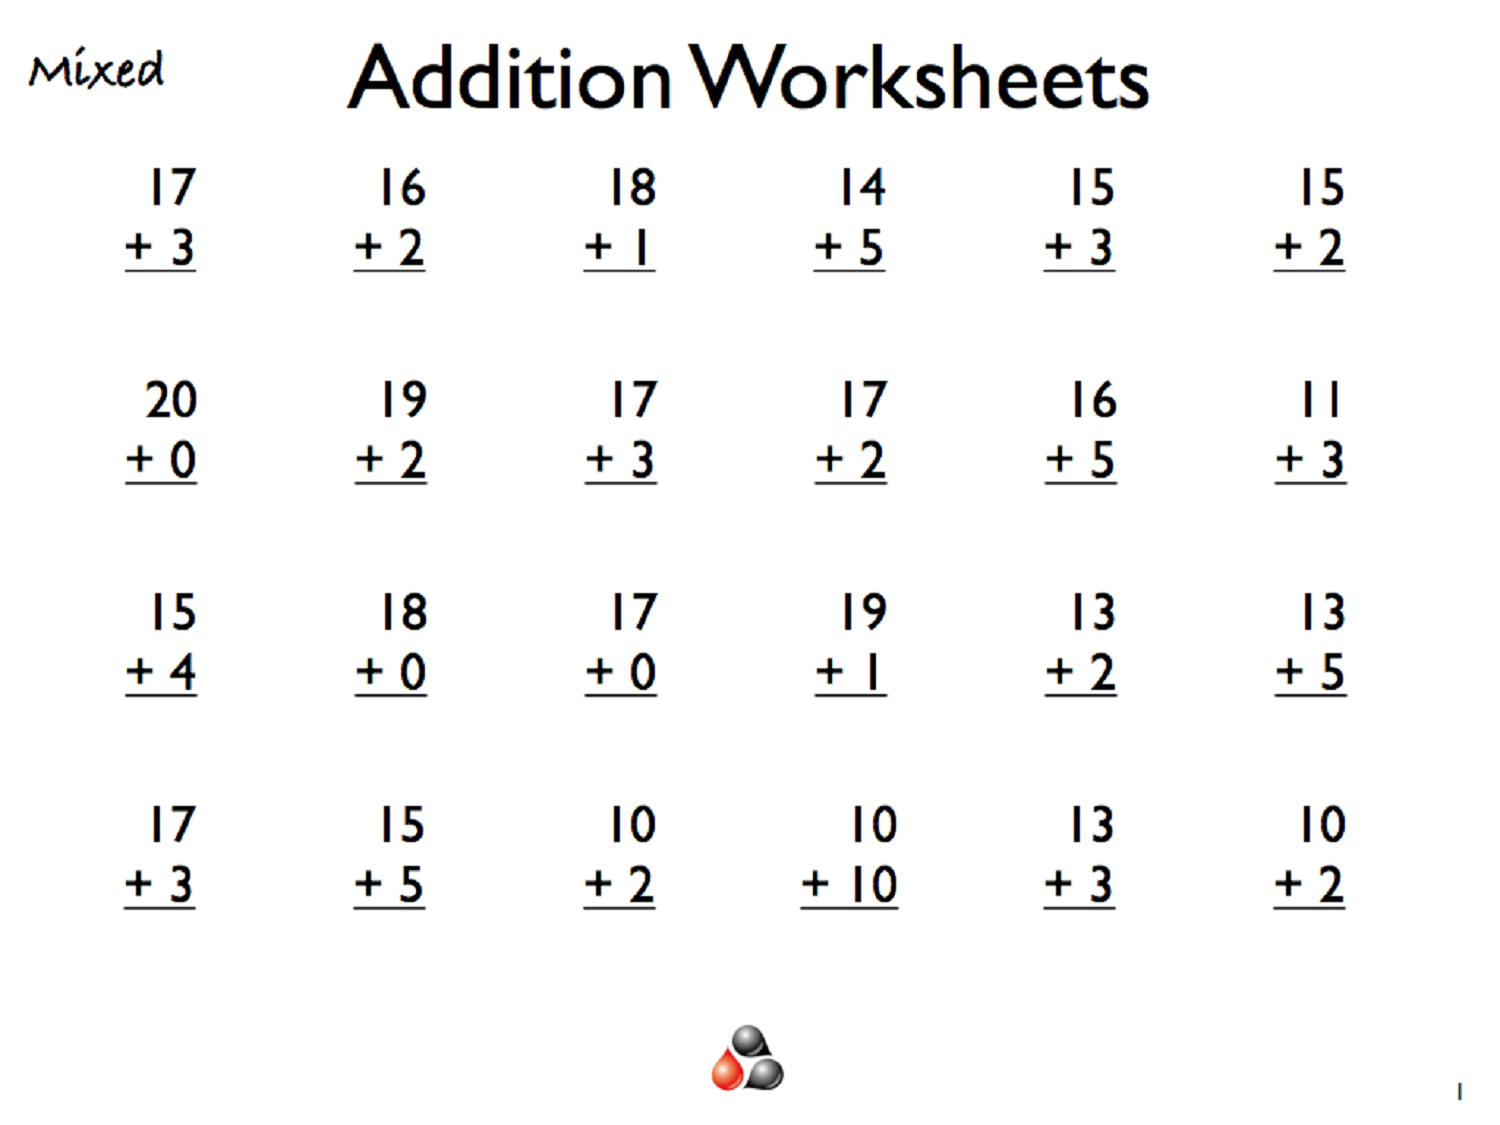 Addition For Worksheets Grade 1 Is Helpful Educative Media